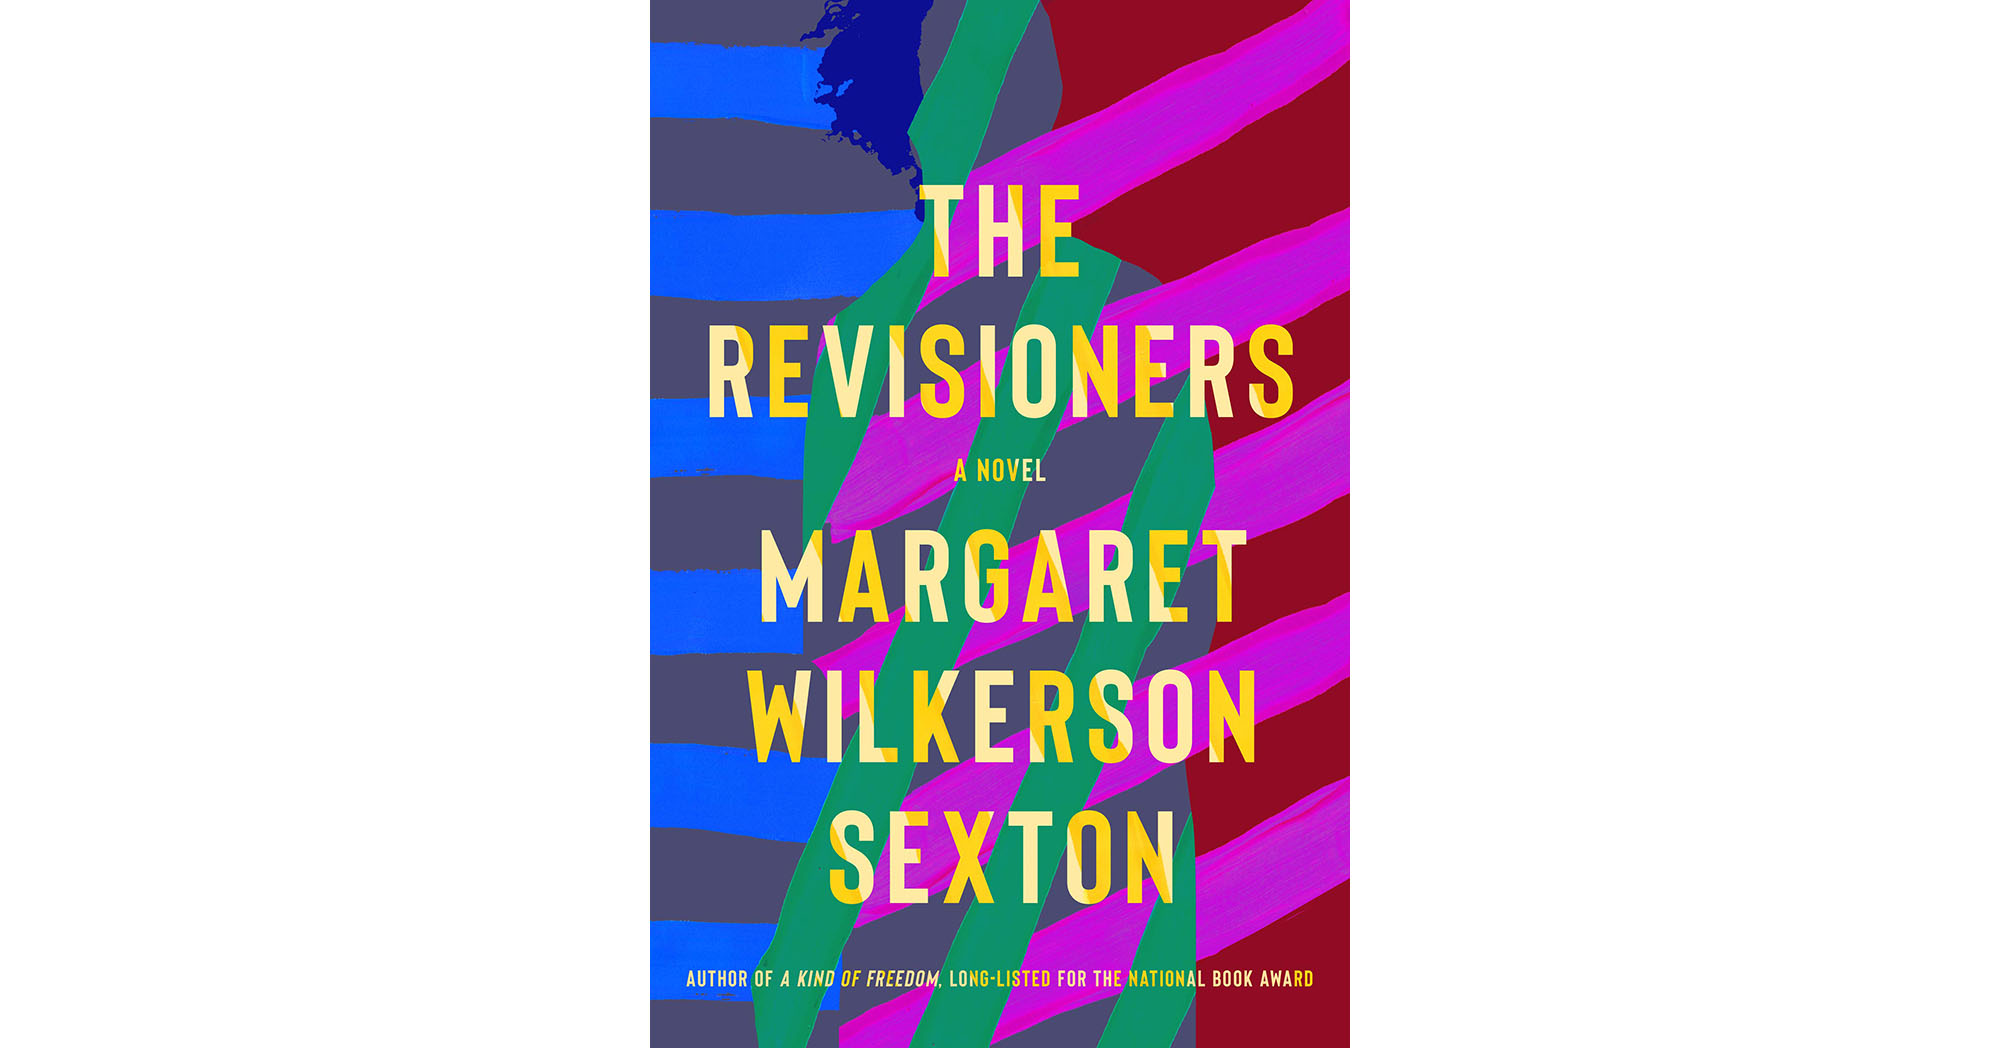 Cover of The Revisioners, by Margaret Wilkerson Sexton